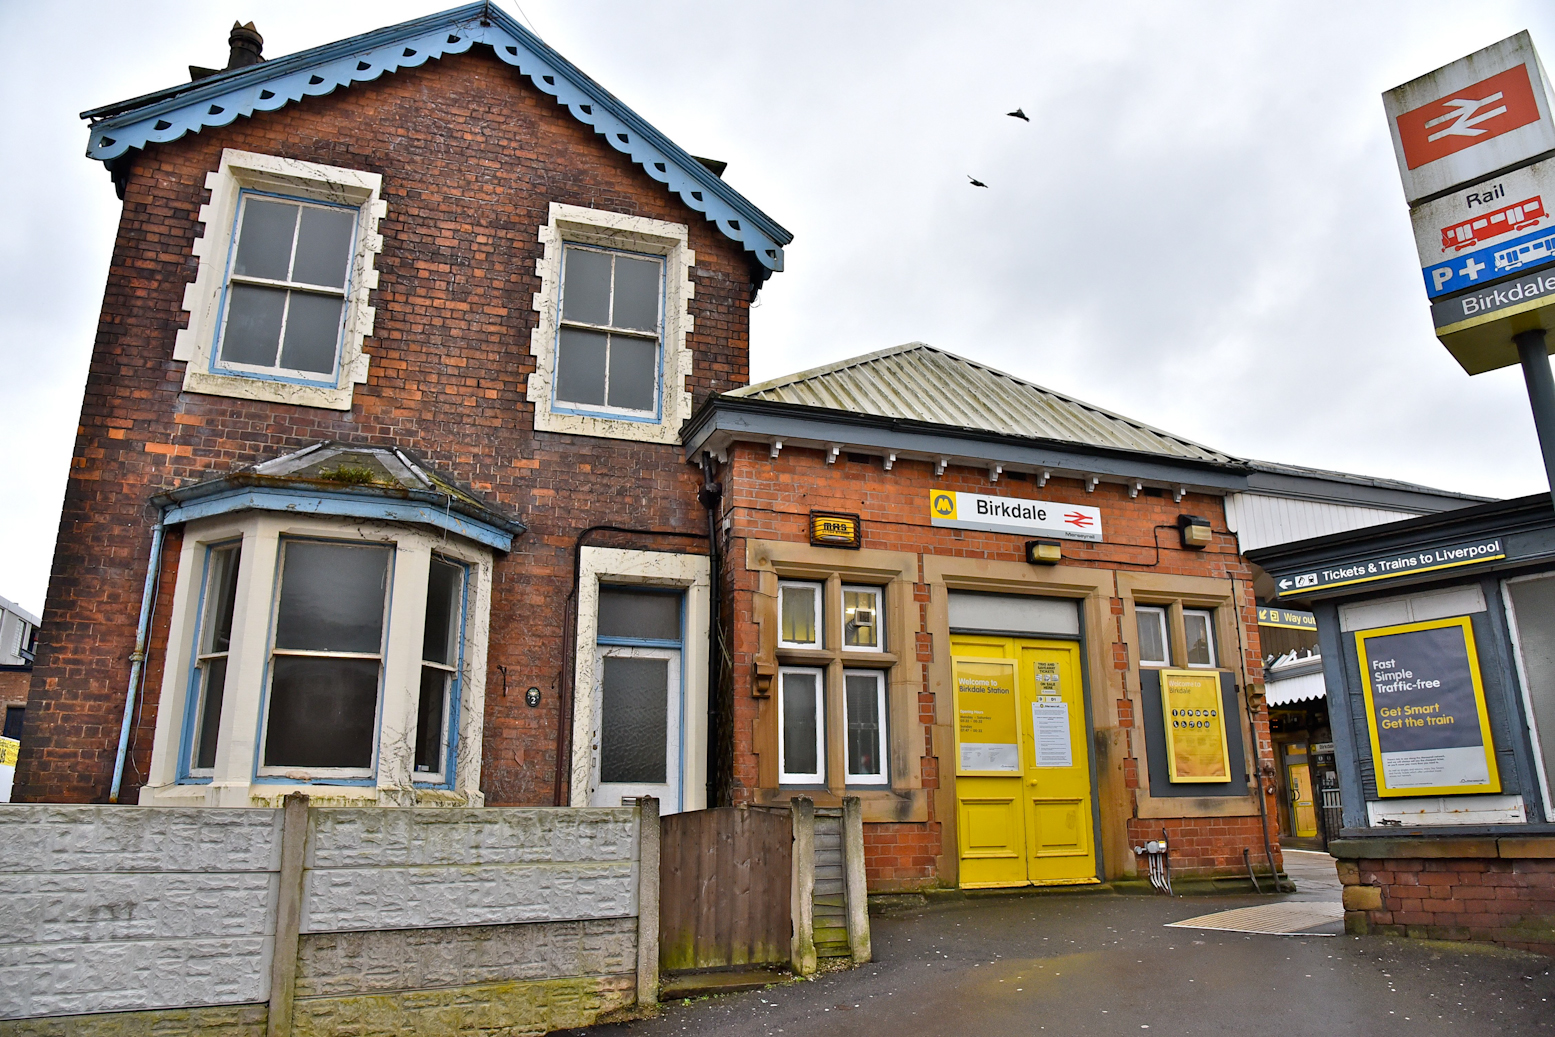 Urgent call for volunteers and funding for brand new Birkdale library scheme